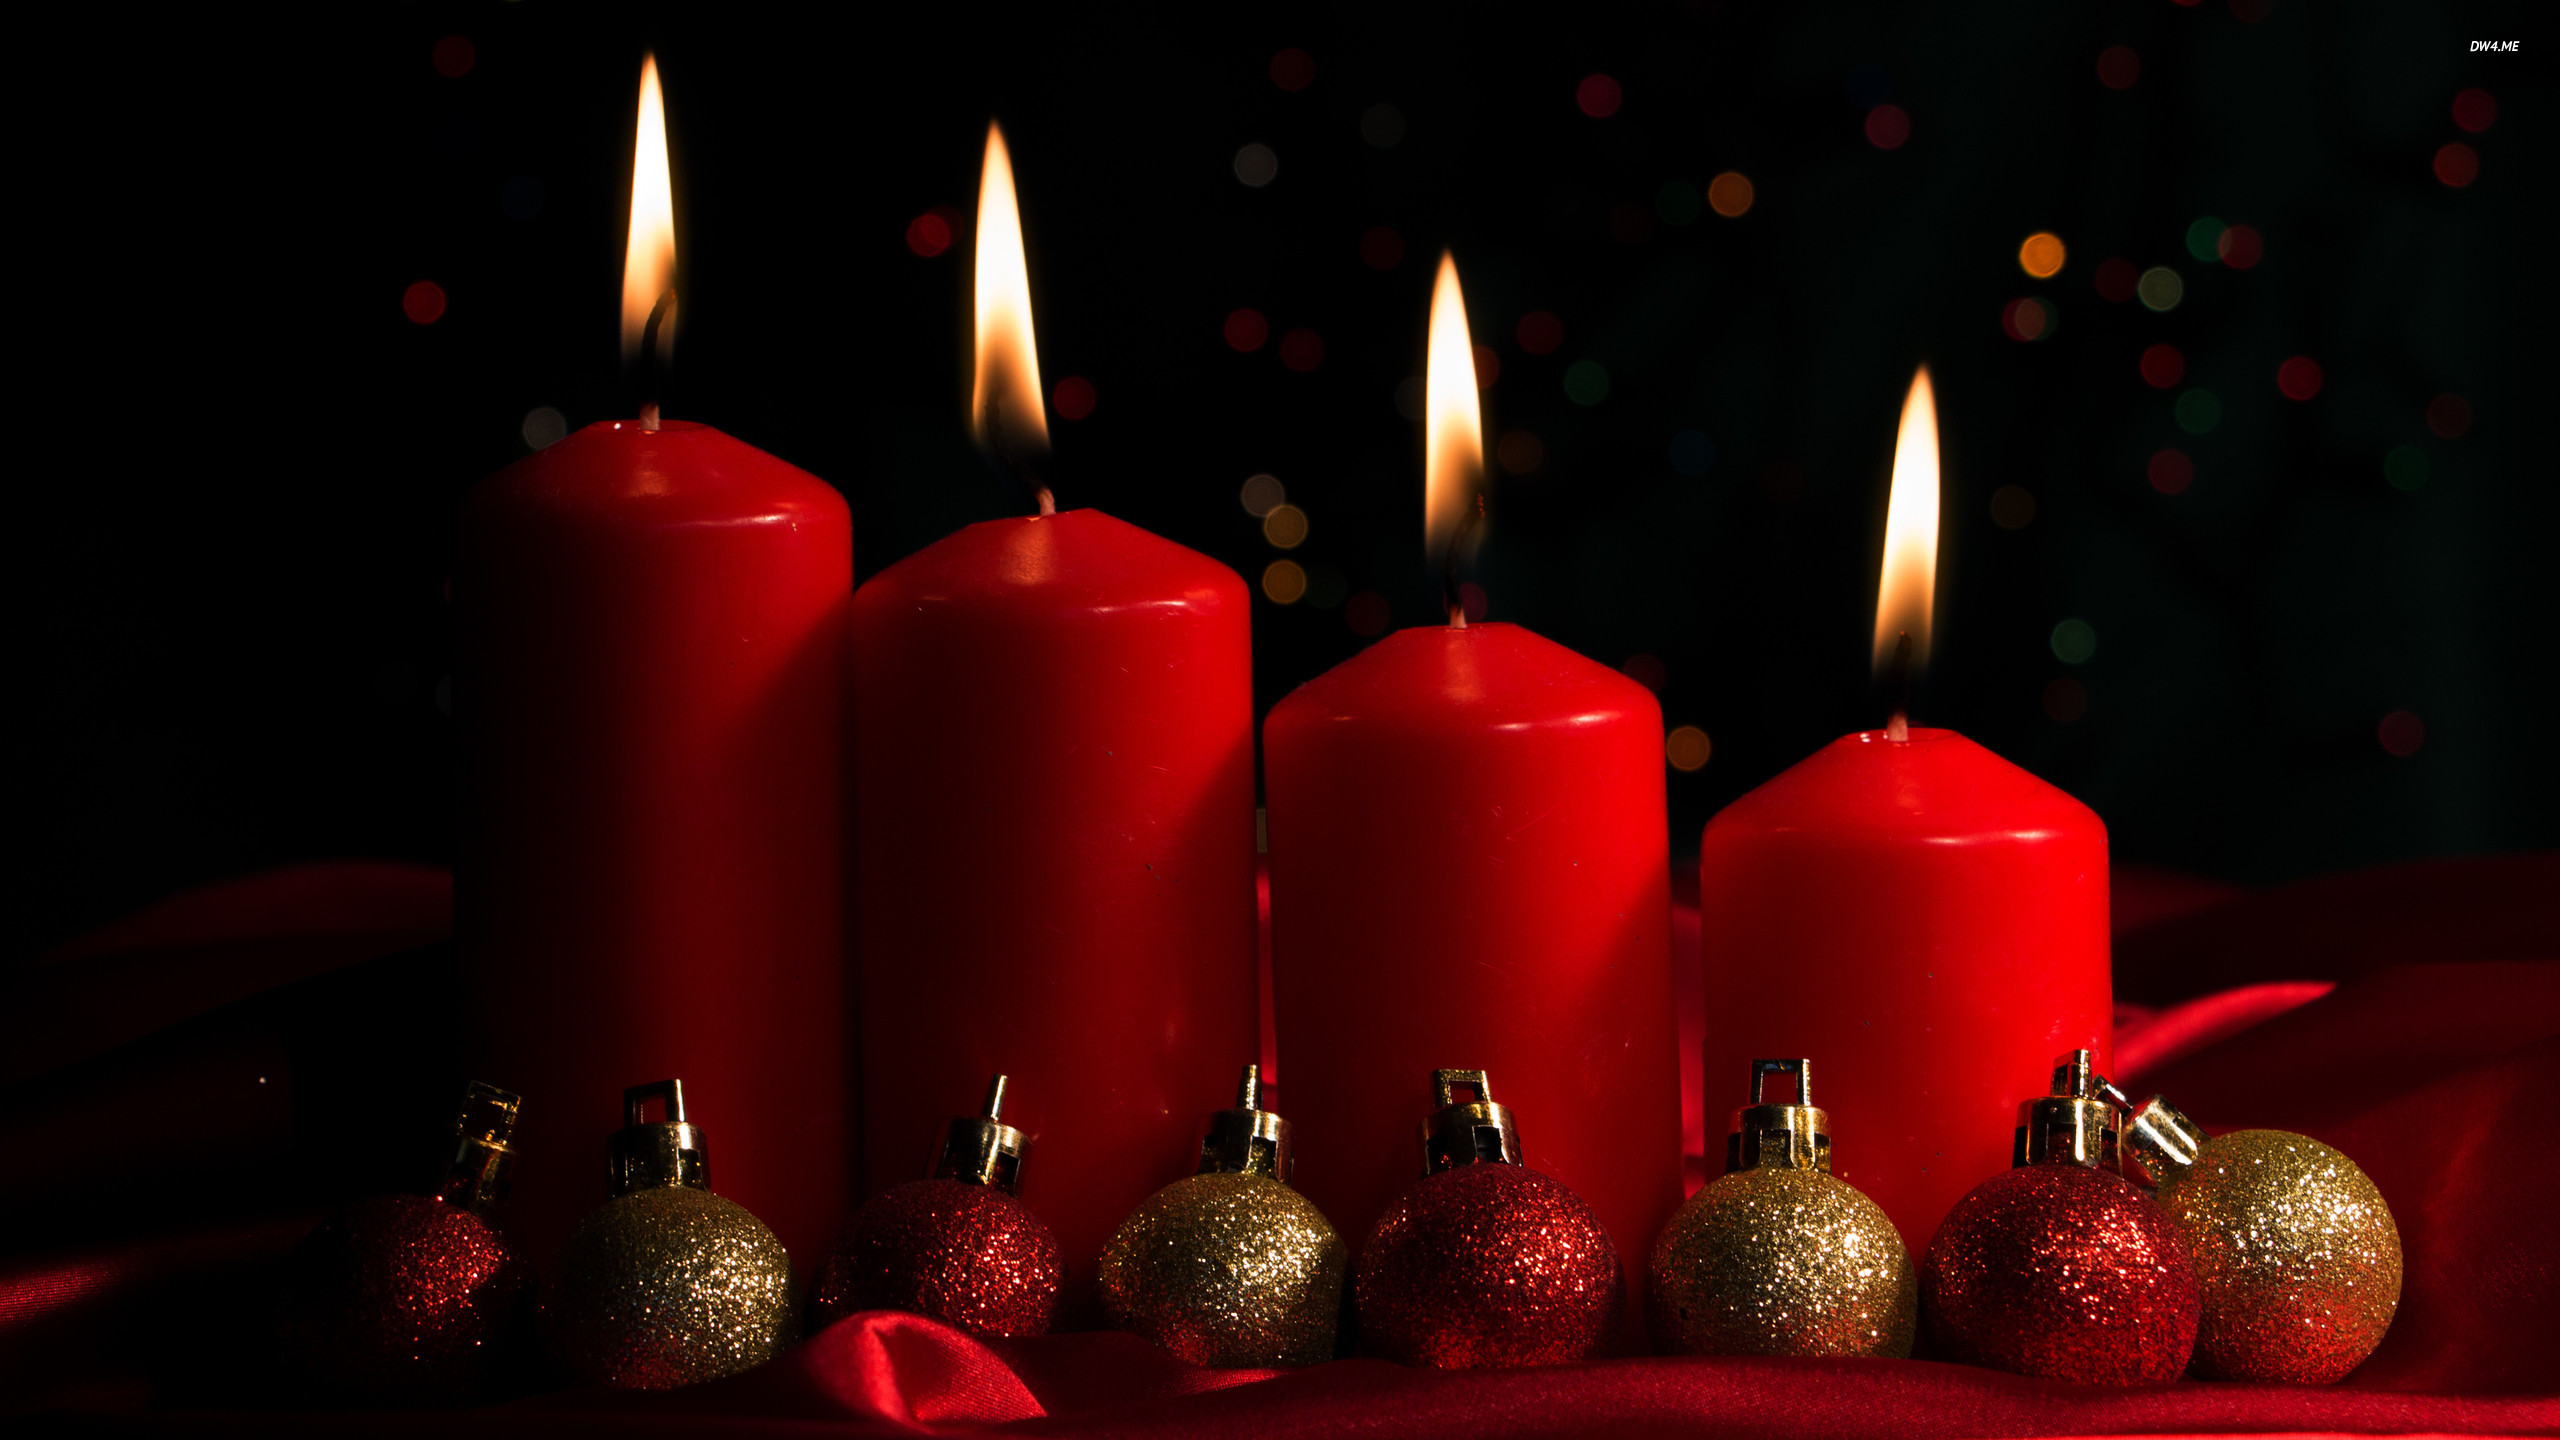 Filename: 3696-red-advent-candles-and-baubles-2560×1440-holiday-wallpaper .jpg